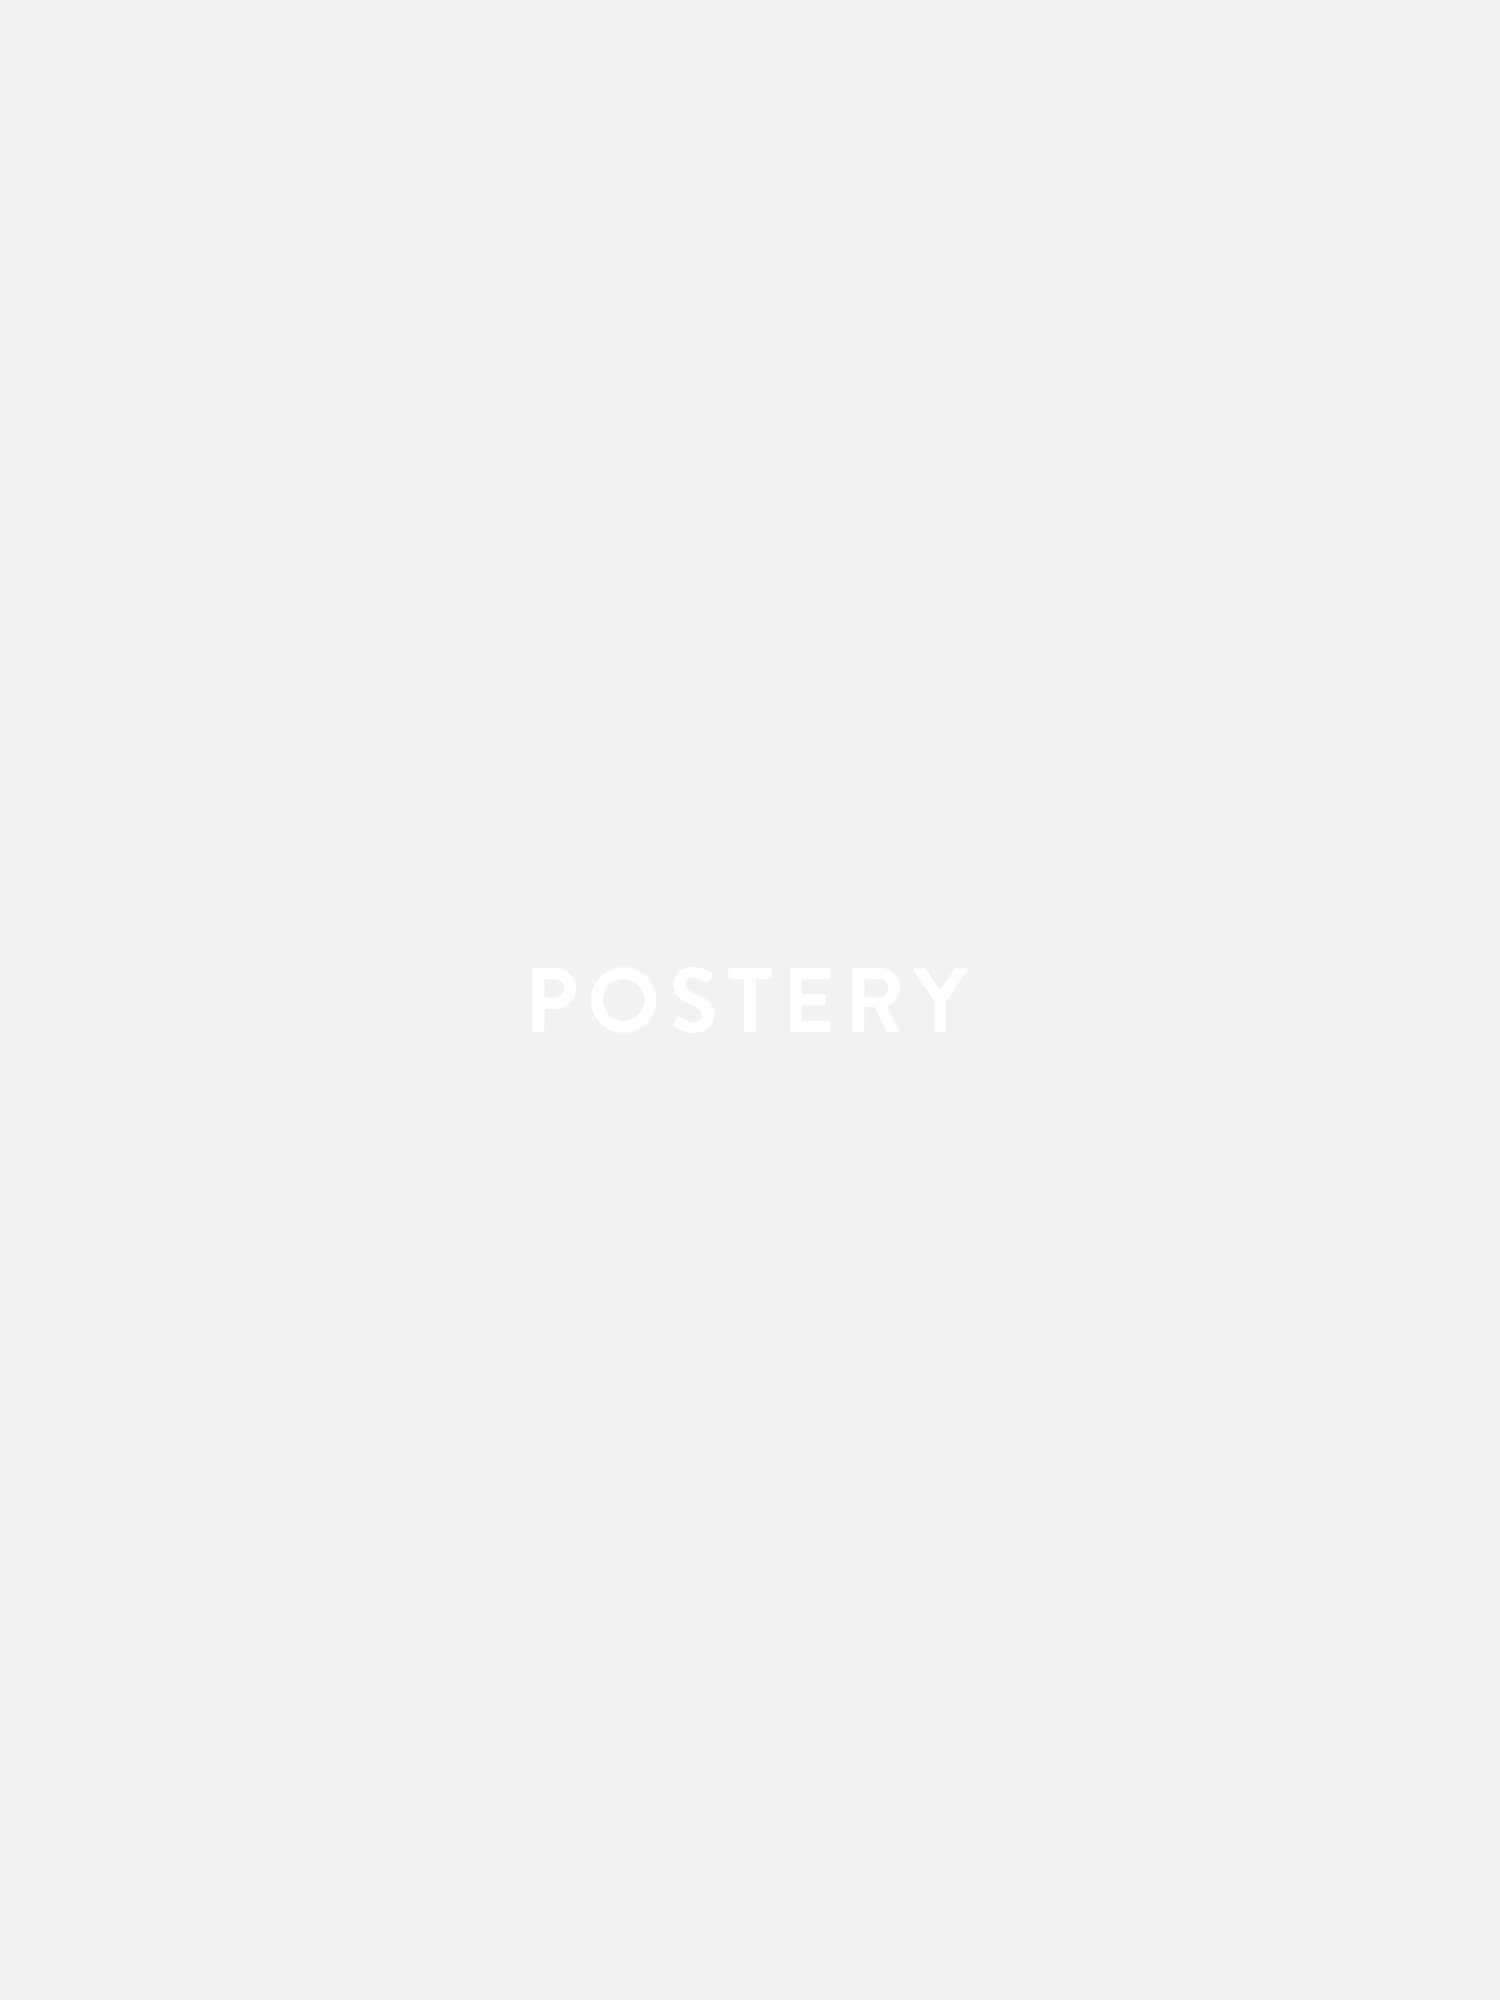 Geometric Forms no.1 Poster